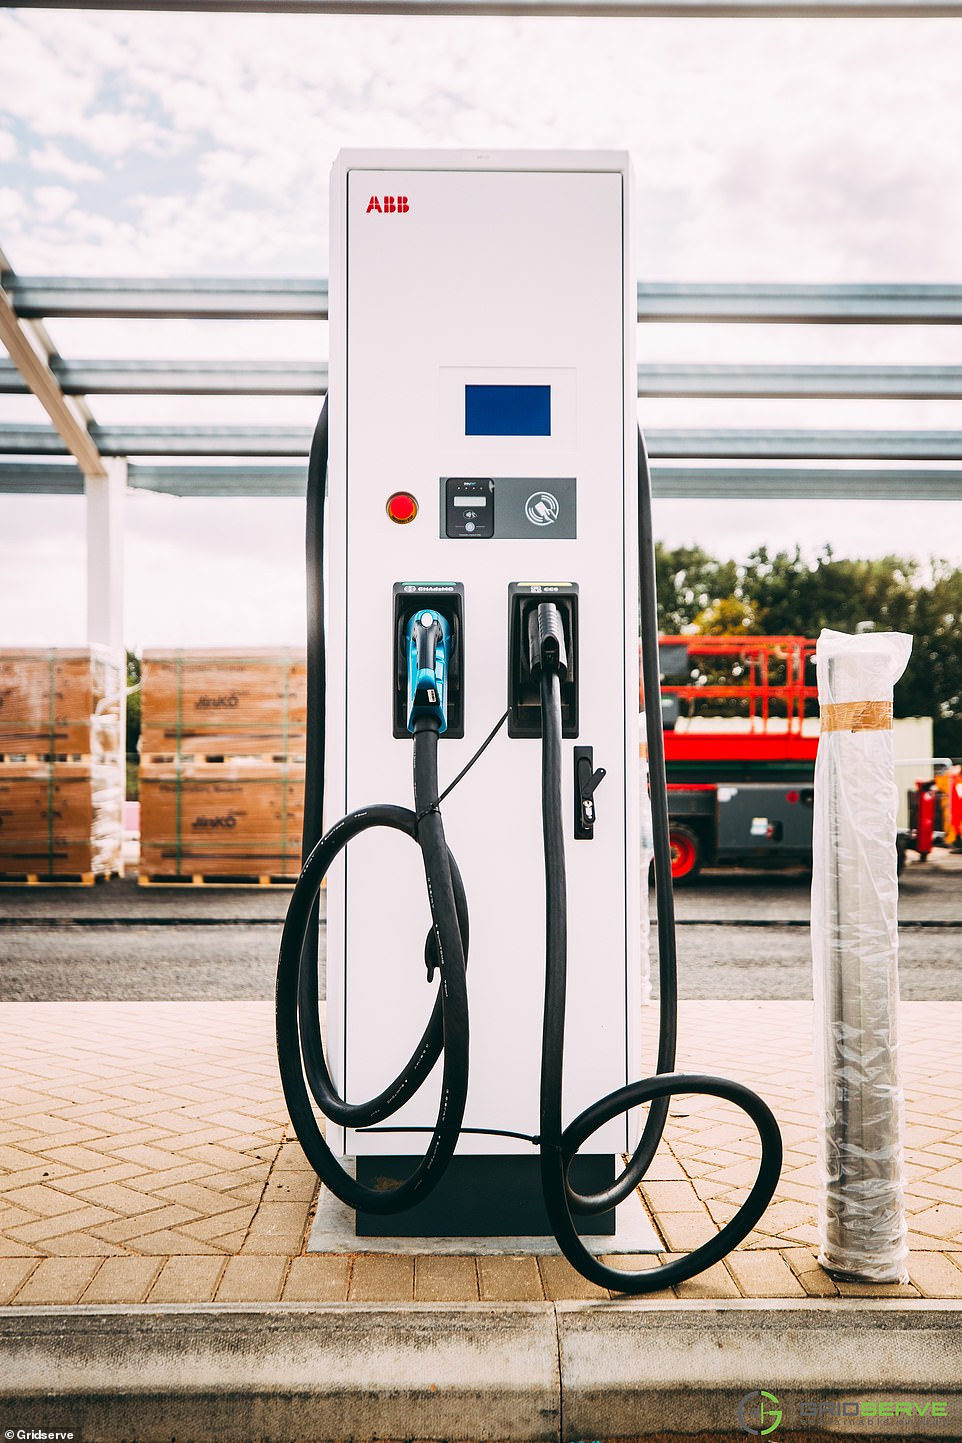 The company has already secured exclusivity at 100 site, and planning applications for two additional forecourts in Uckfield and Norwich East have recently been submitted